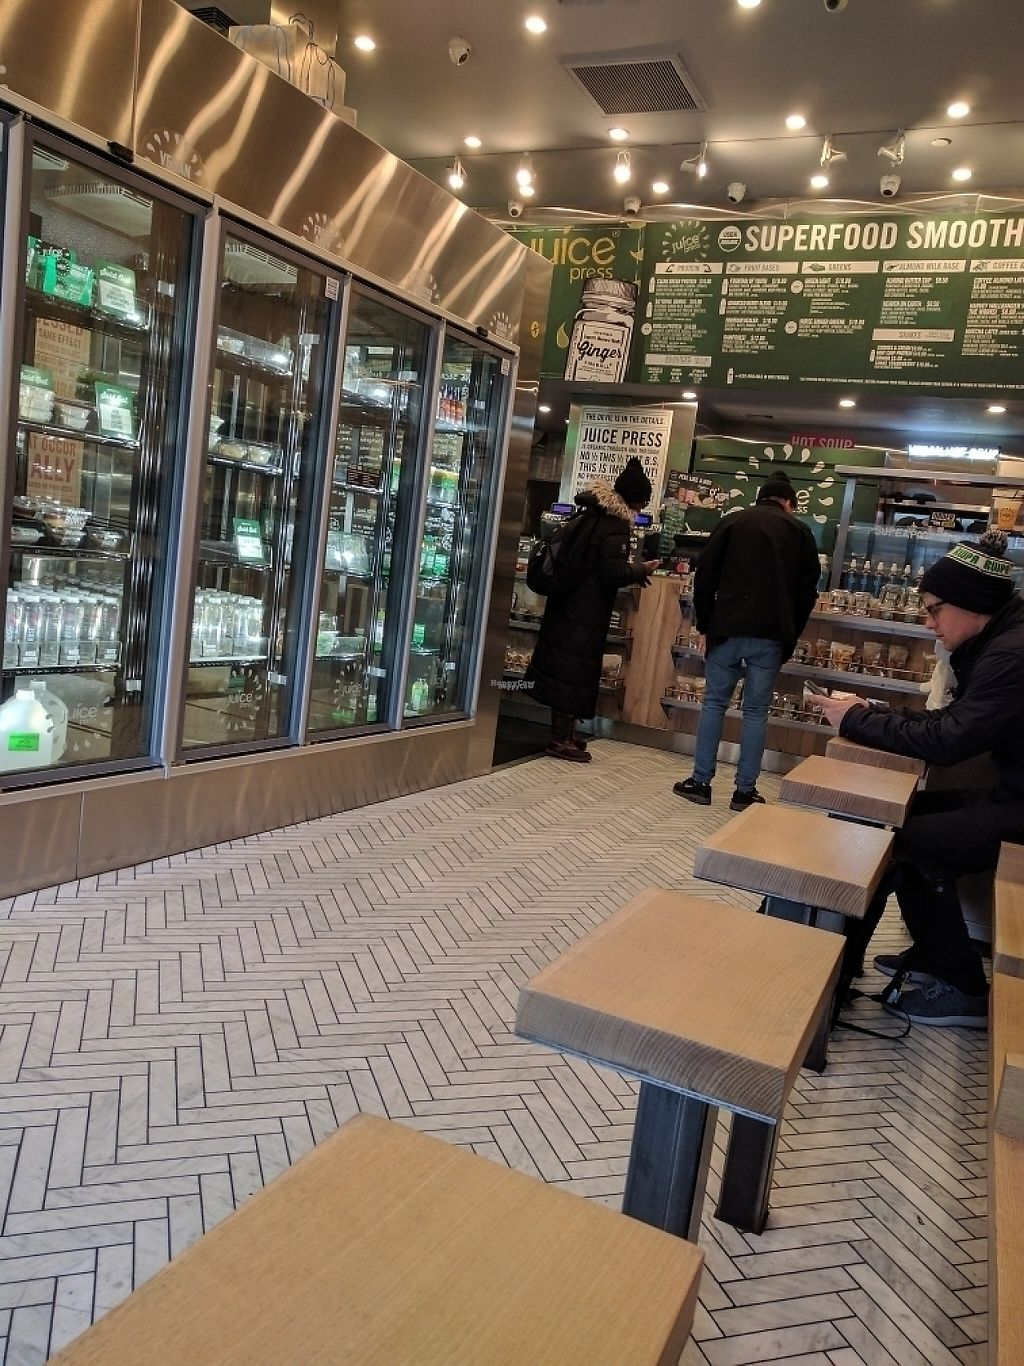 """Photo of Juice Press - Midtown East  by <a href=""""/members/profile/Tkmycall"""">Tkmycall</a> <br/>Vegan Raw Heaven <br/> January 14, 2017  - <a href='/contact/abuse/image/77149/211959'>Report</a>"""